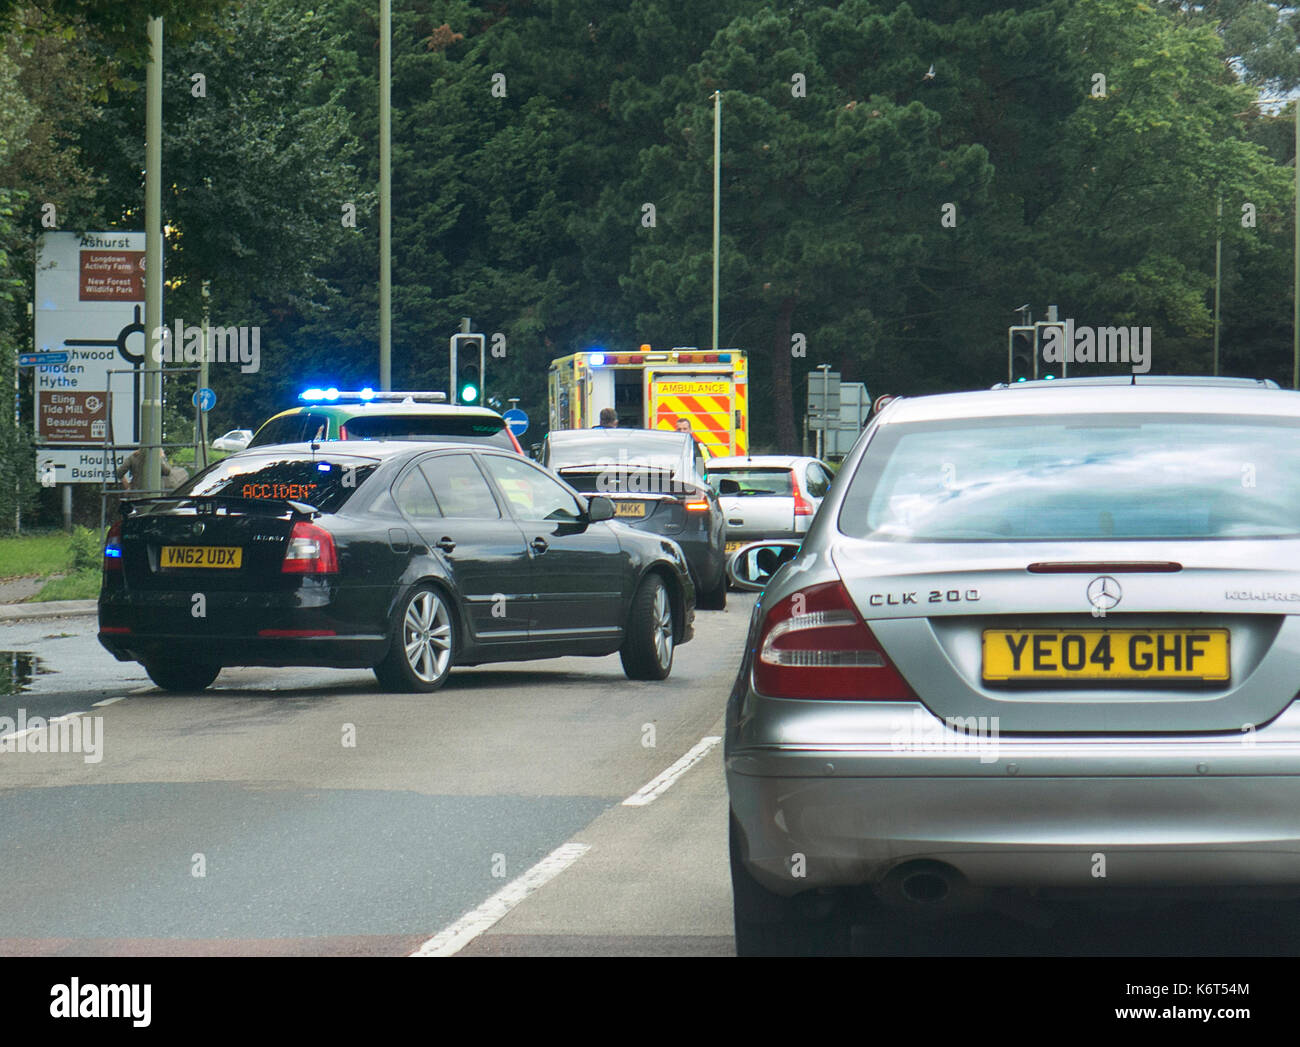 Ambulance responding to road traffic accident 2017 - Stock Image